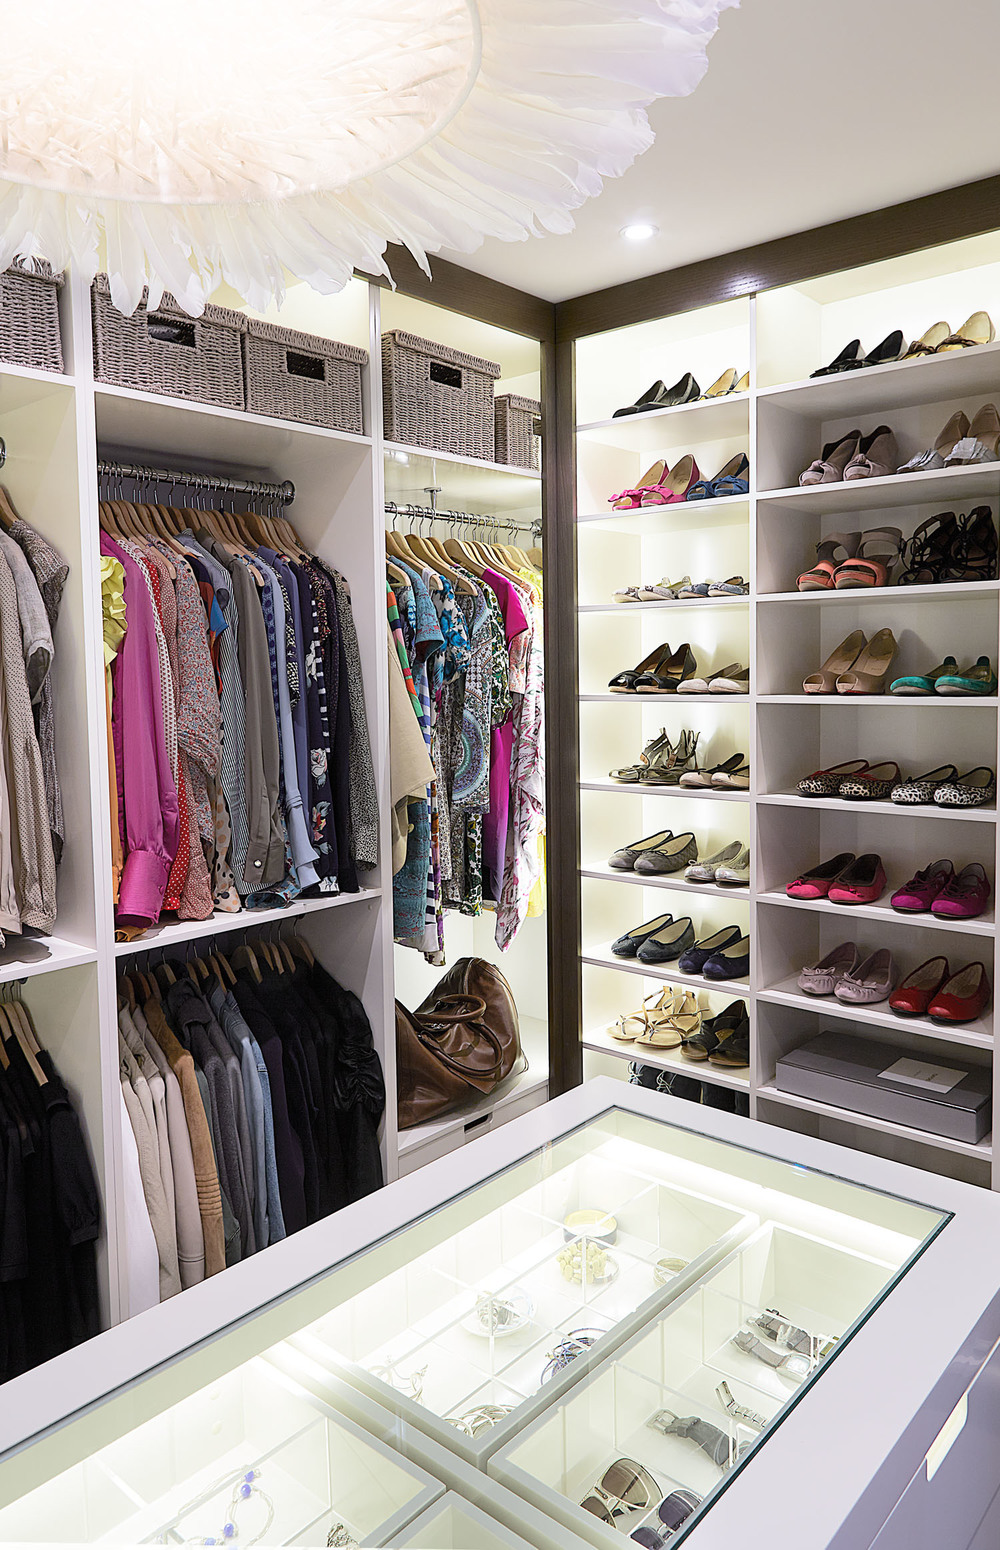 dressing-room-designed-by-wardrobe-diane-bergeron.jpg